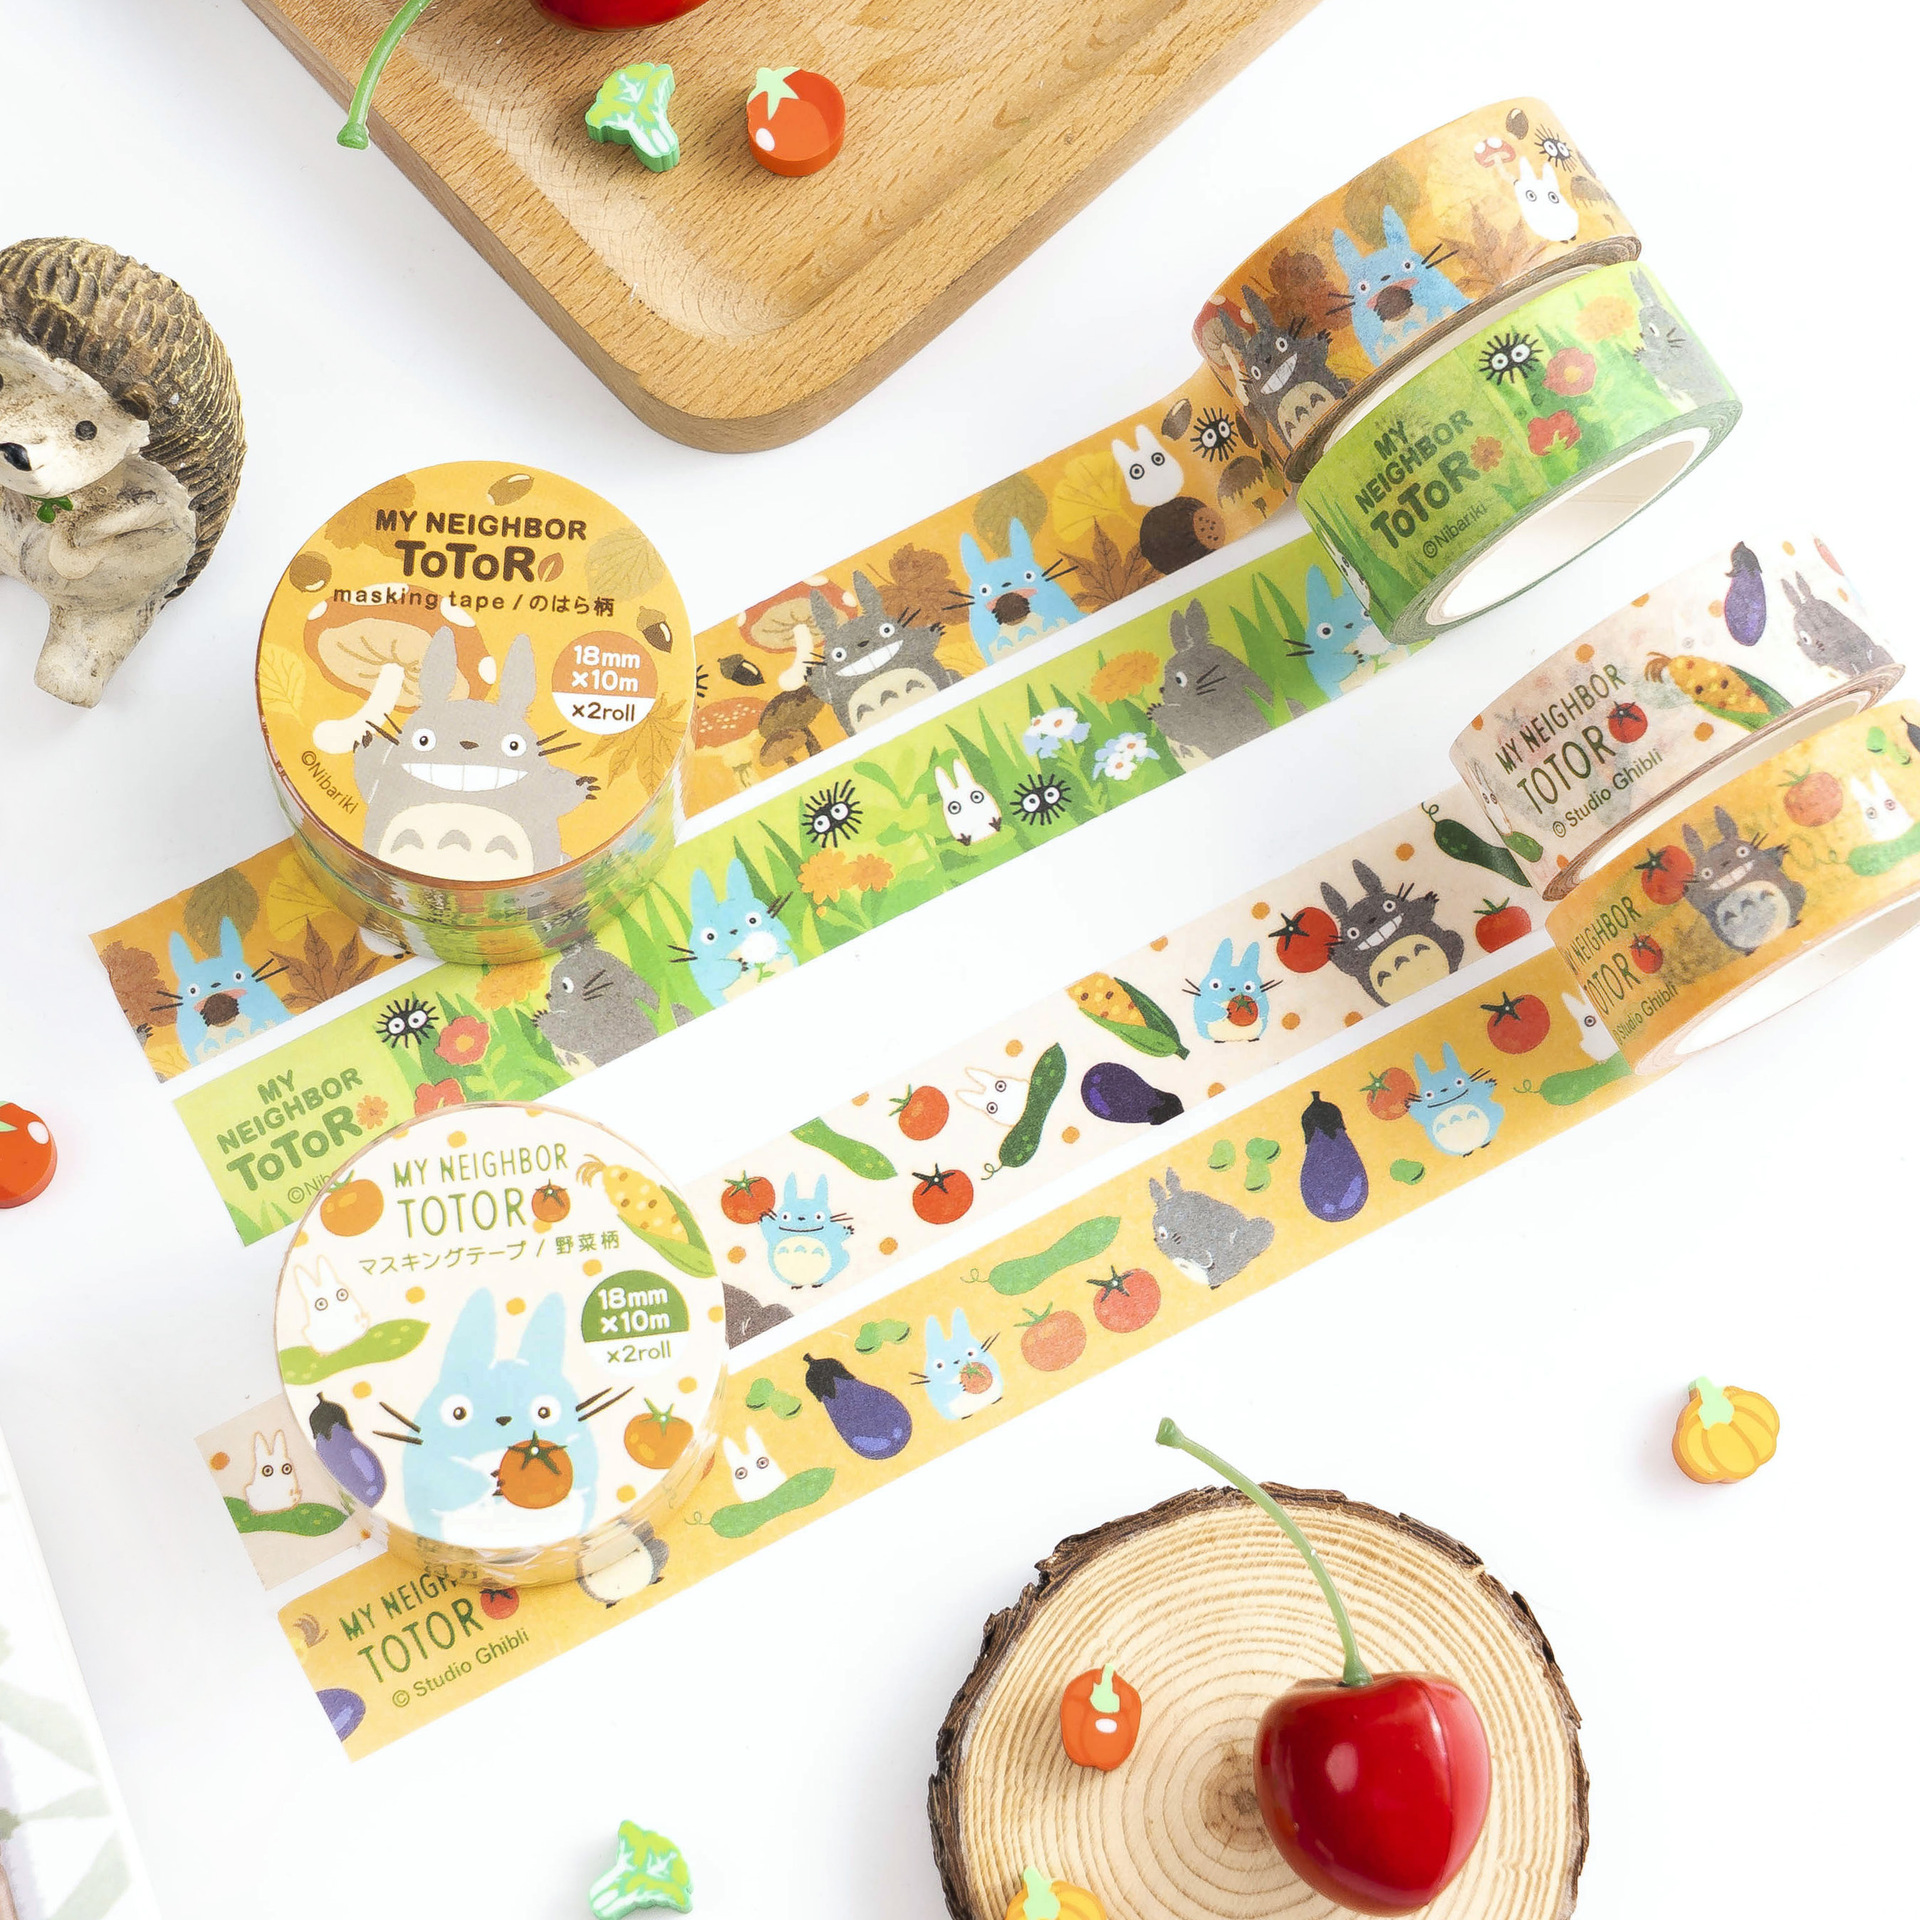 2 Pcs/pack 1.8cm Cartoon Totoro Bullet Journal Washi Tape Set Adhesive Tape DIY Scrapbooking Sticker Label Masking